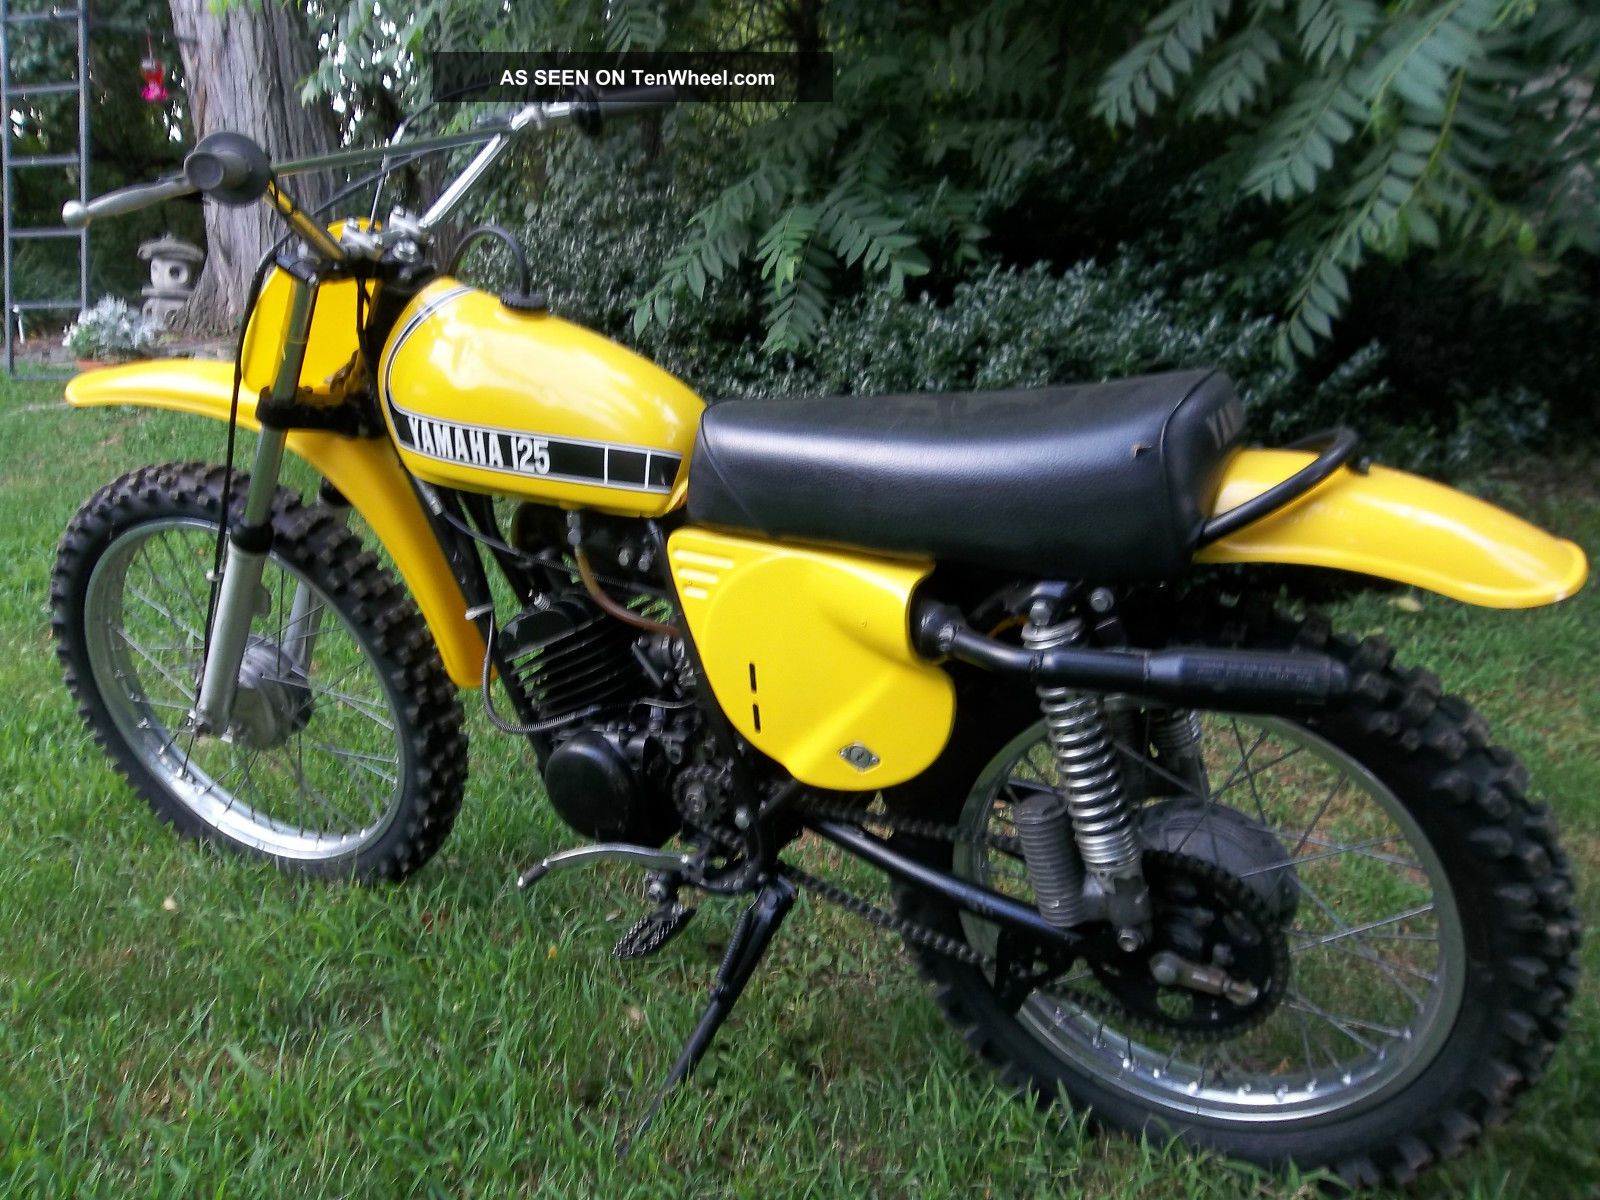 1974 yamaha mx 125. Black Bedroom Furniture Sets. Home Design Ideas